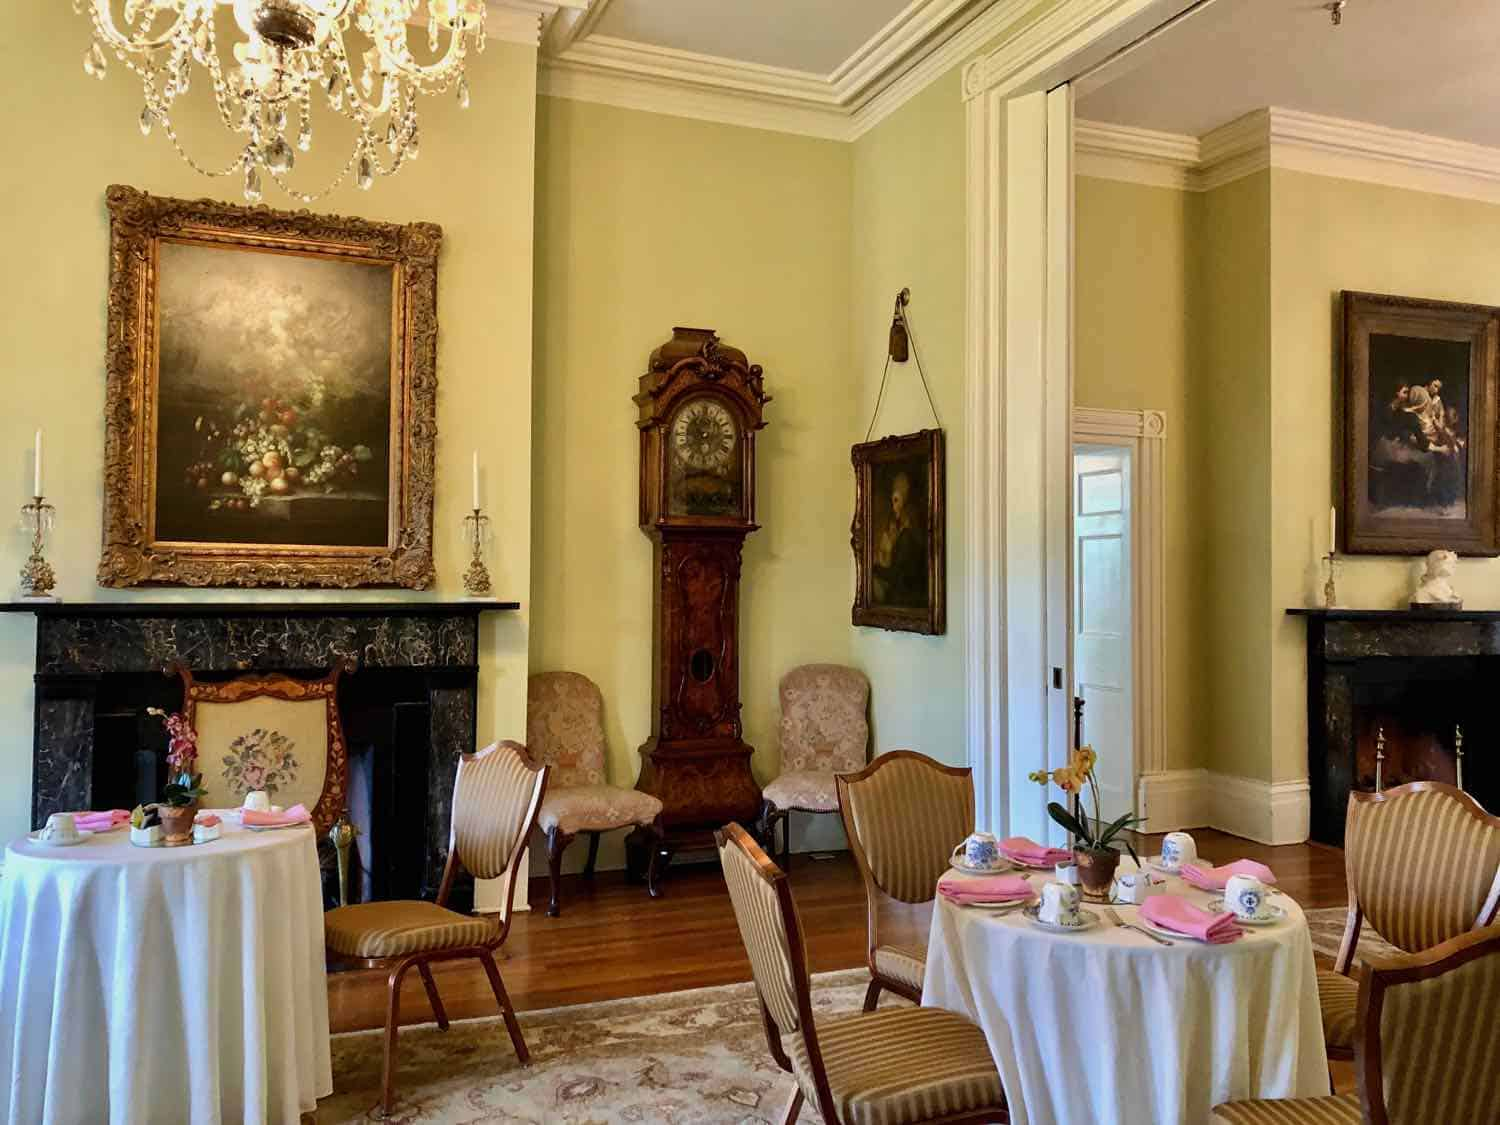 Tables in a colonial era room covered with linen tablecloths, set for tea